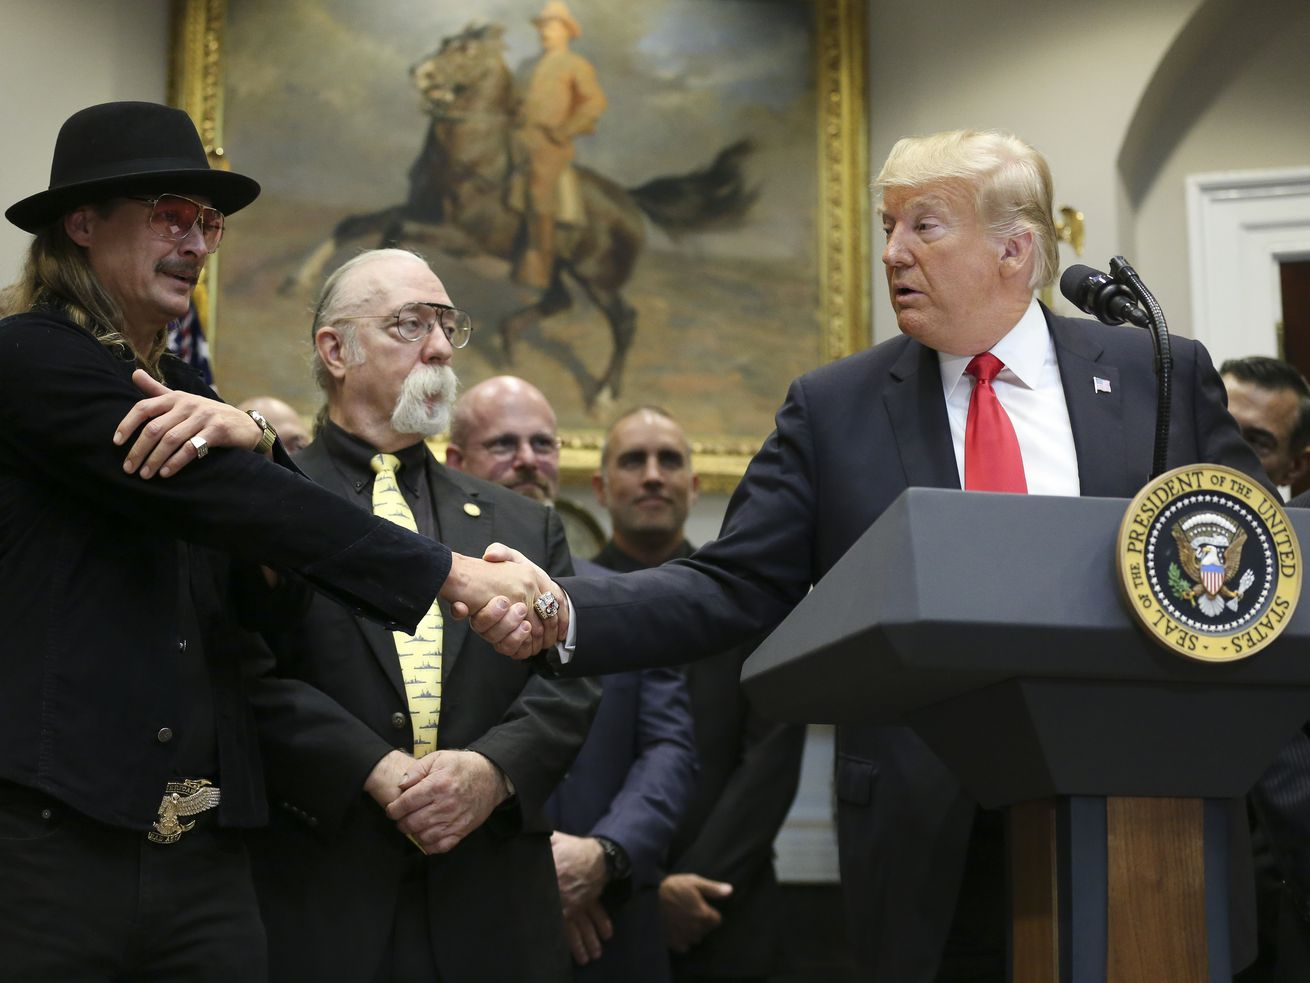 Donald Trump shares a handshake with Kid Rock prior to signing the Music Modernization Act on October 11, 2018.